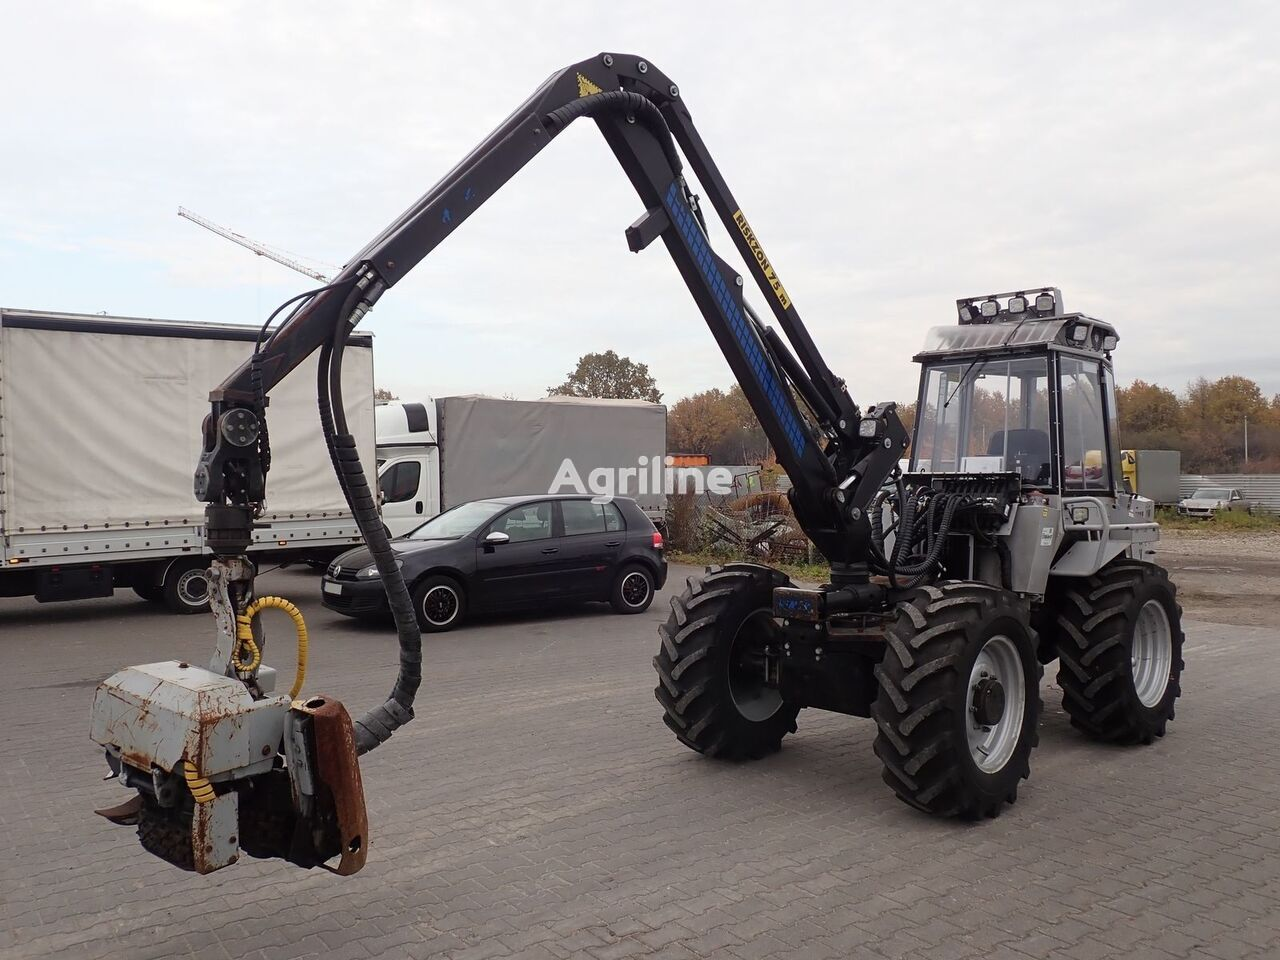 harvesteris VIMEK 404 T5 / 2,7k mth / CAT Engine / Crane 4,6m / ac / 1 owner